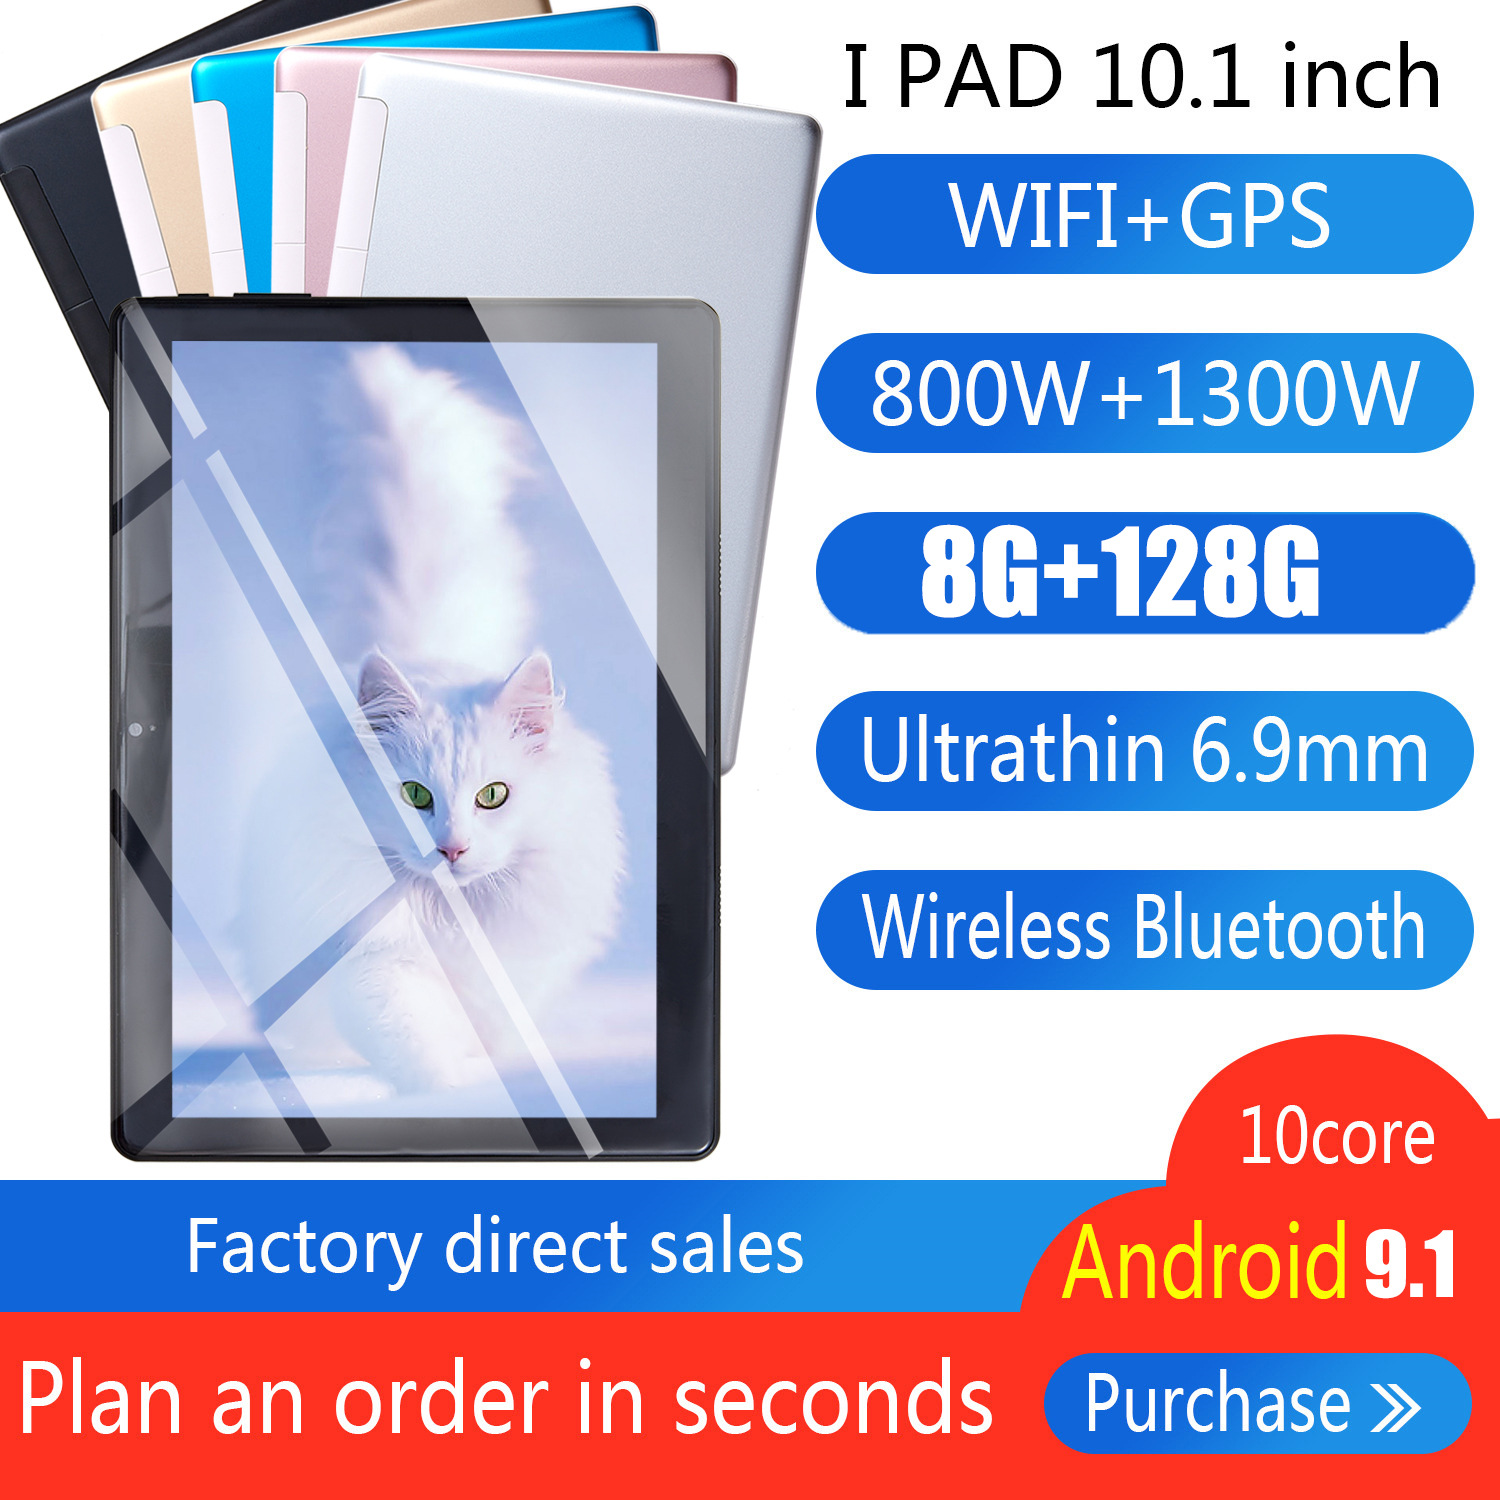 Tablet 10.1 Inch Android 9.1 Tablet 10 Core Google Play 3g 4g LTE Phone Call GPS WiFi Bluetooth Tempered Glass 10.1 Inch